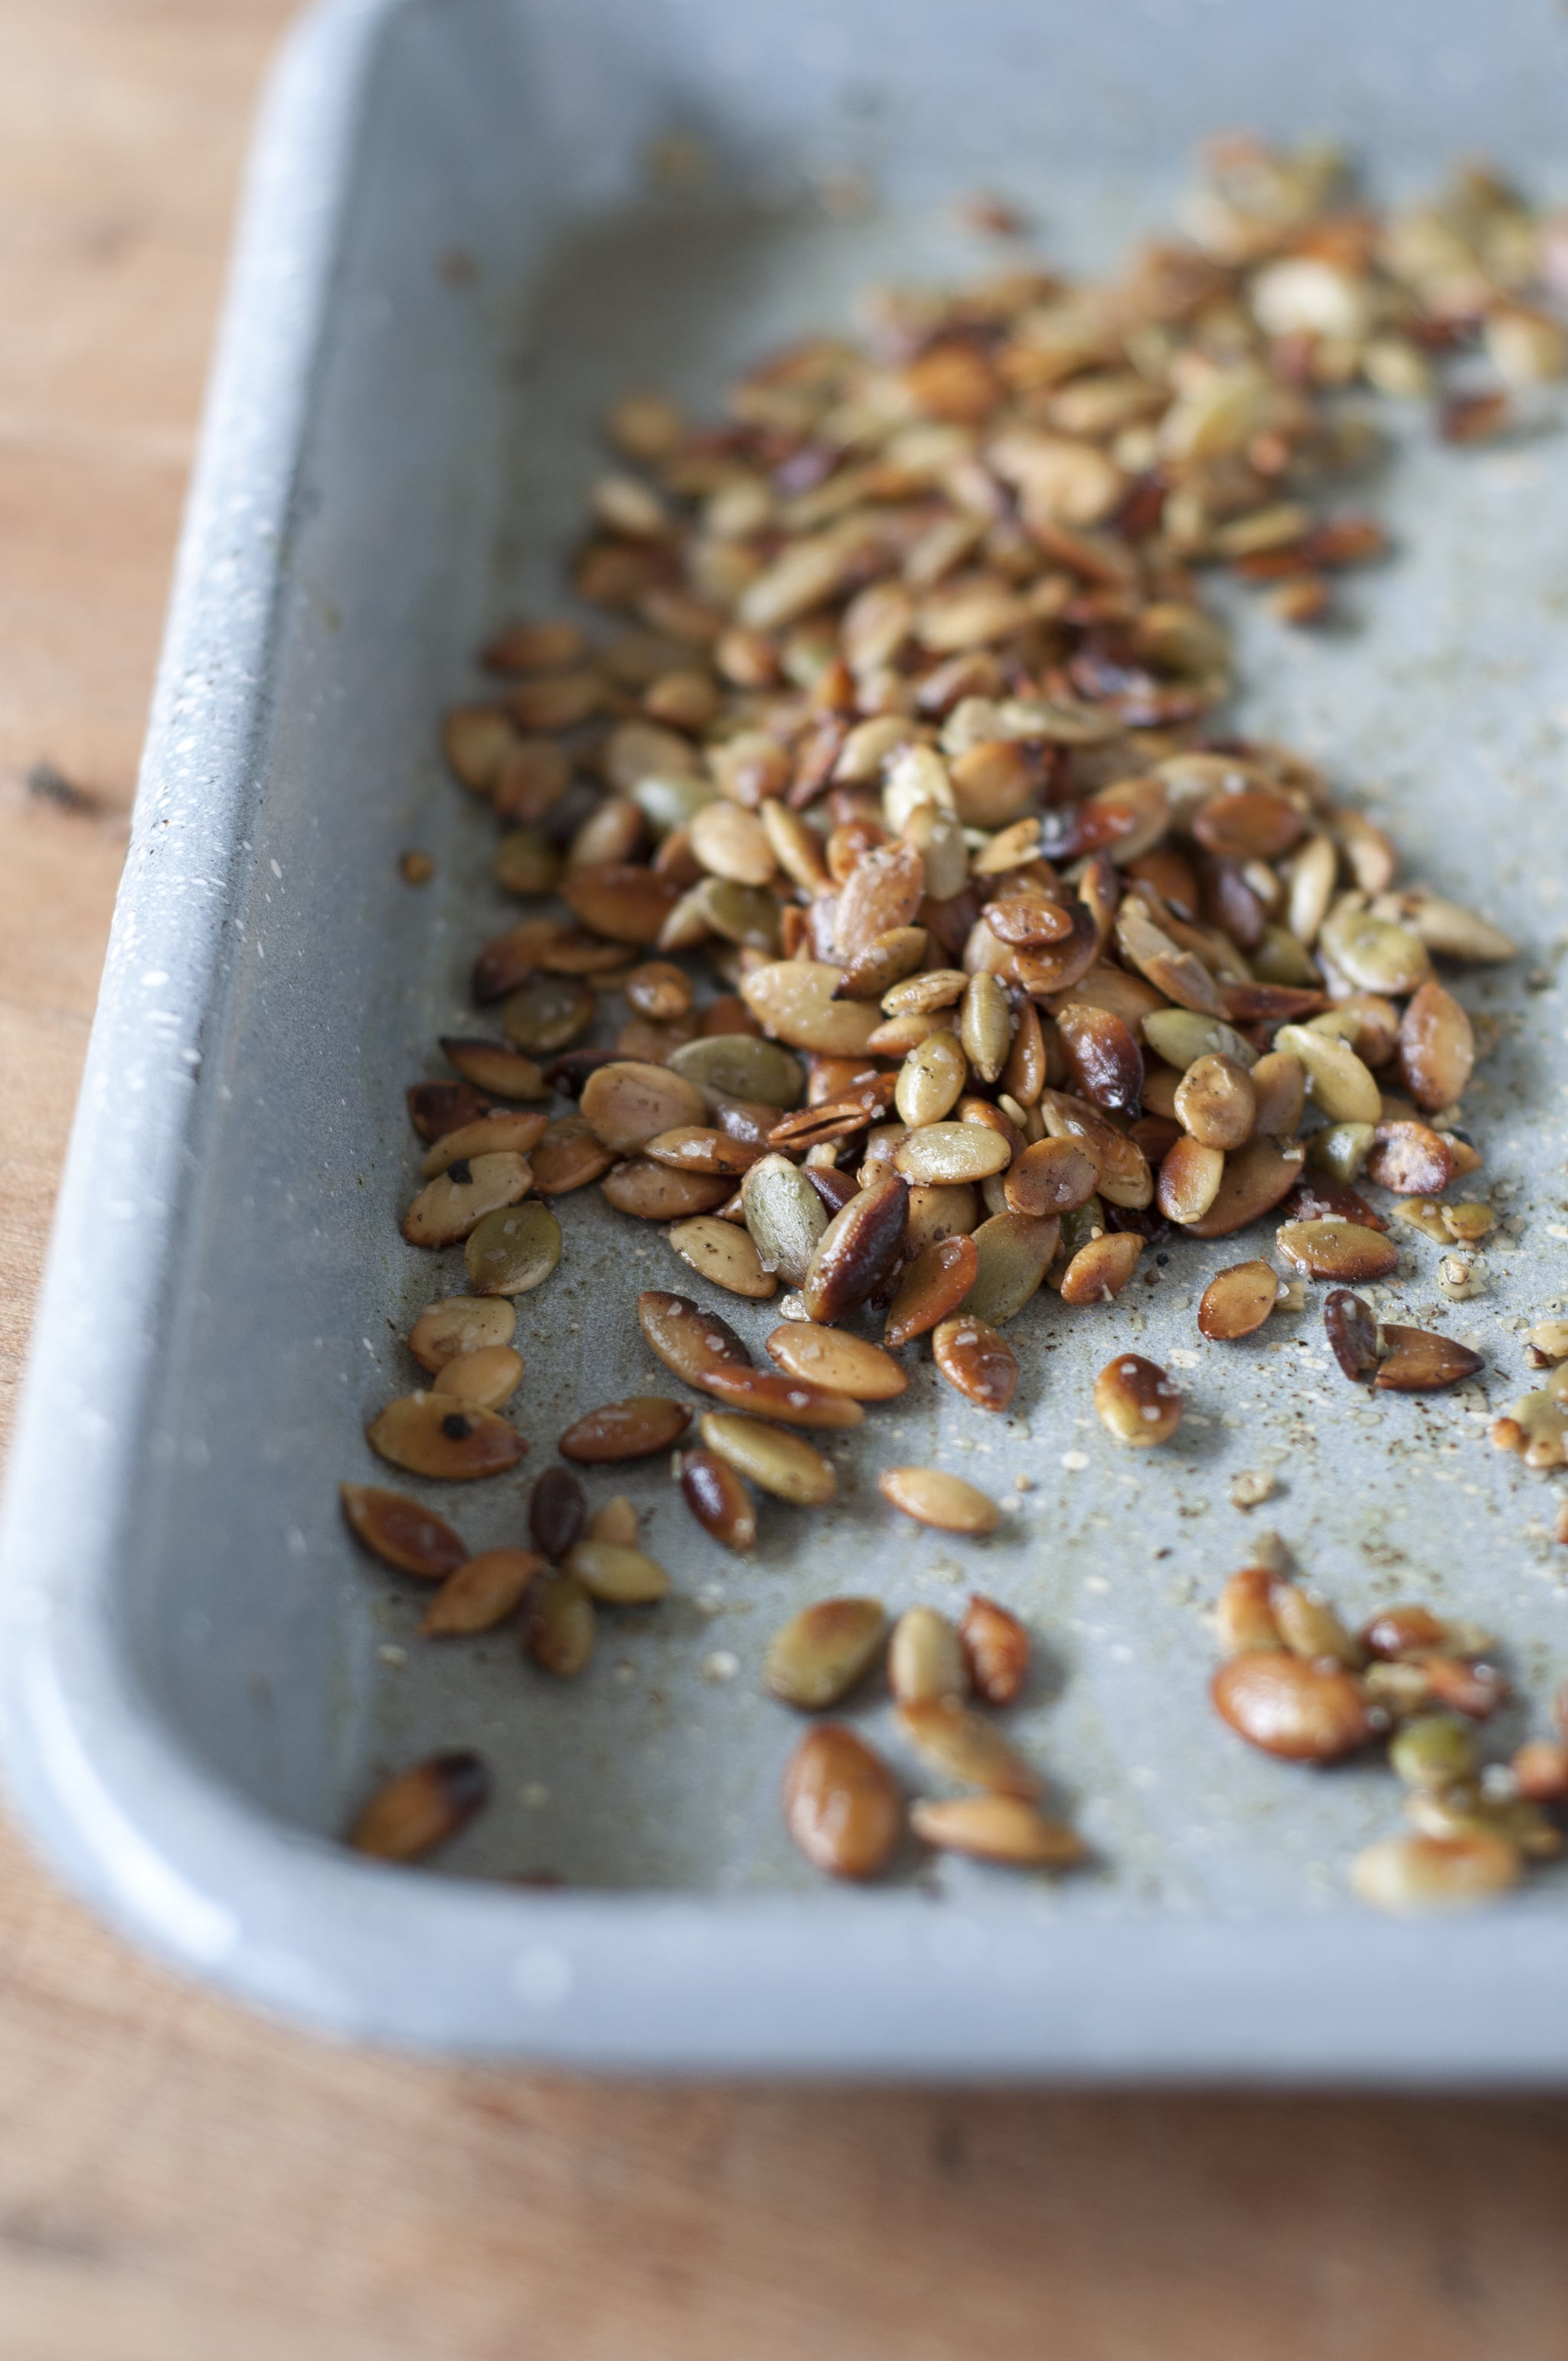 Totally Addictive Metabolism-Boosting Spiced Pumpkin Seeds